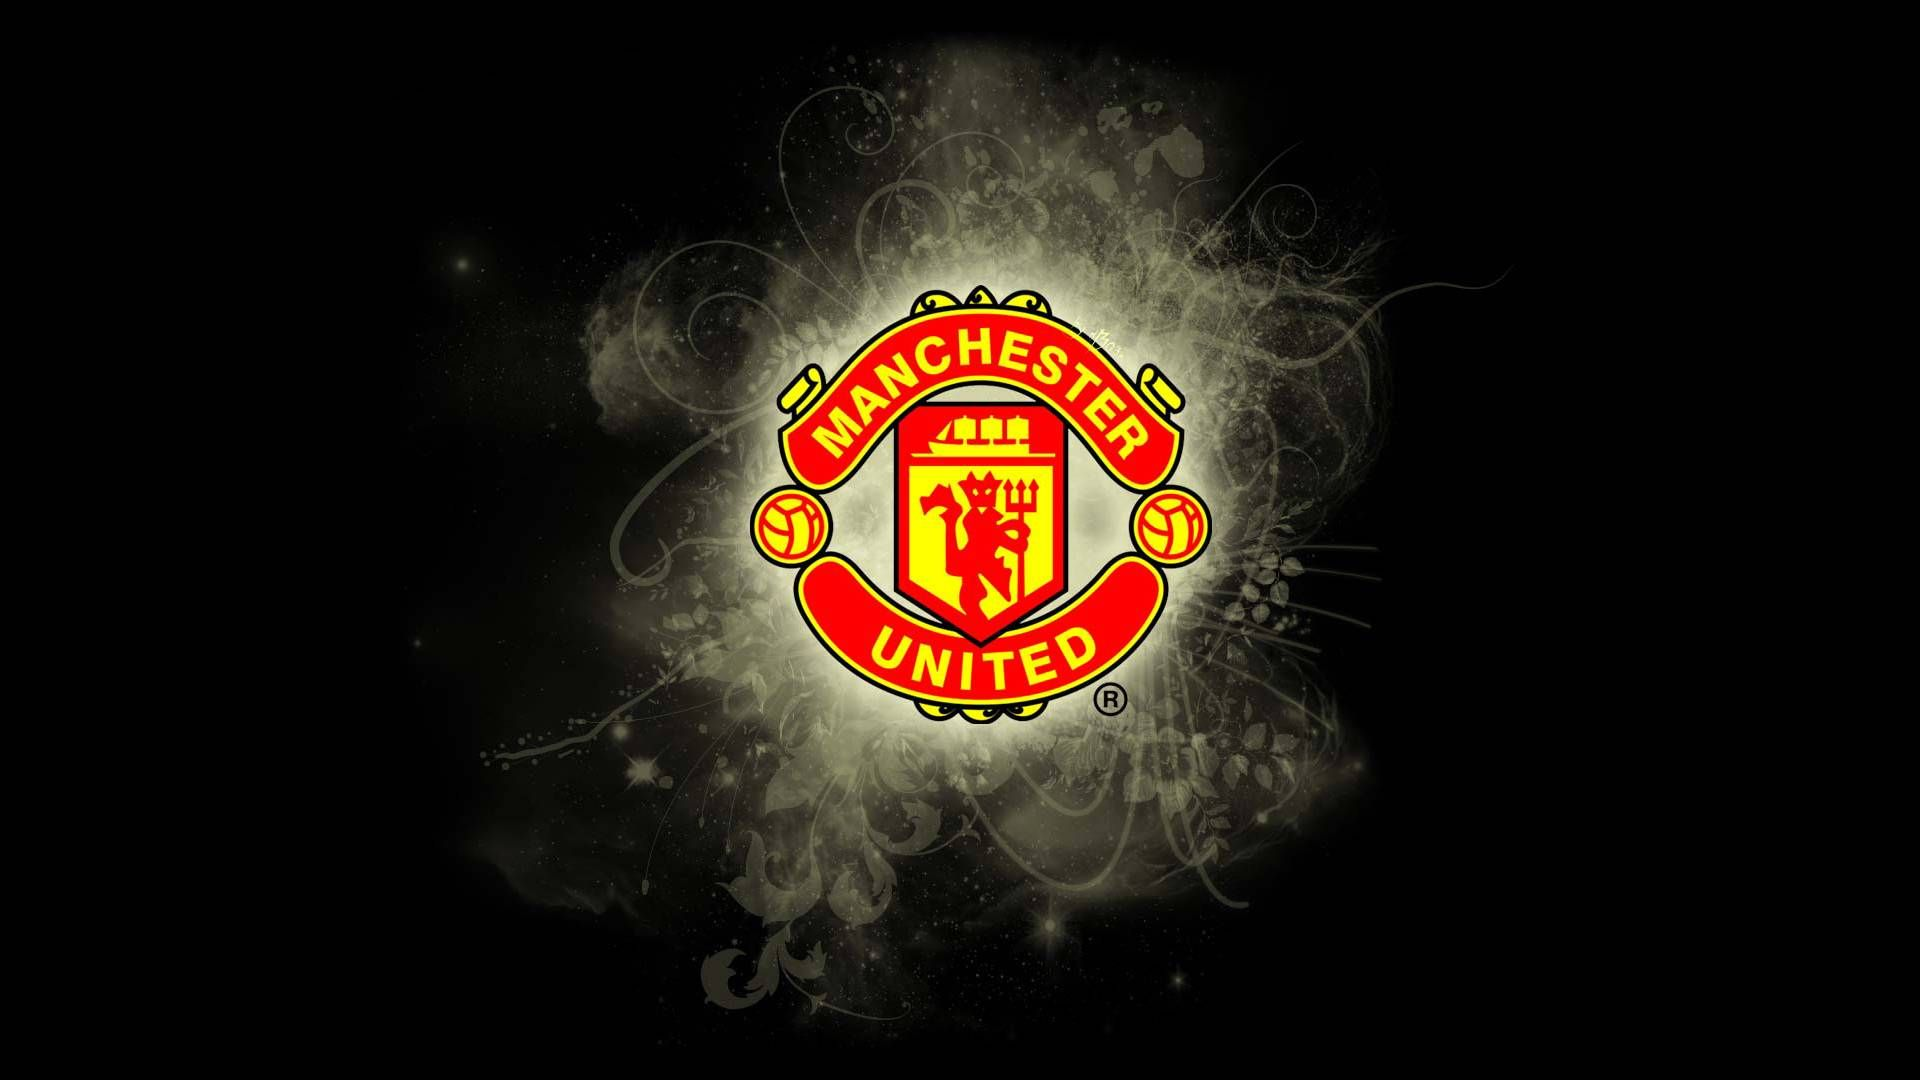 manchester united logo wallpapers hd wallpaper hd wallpapers